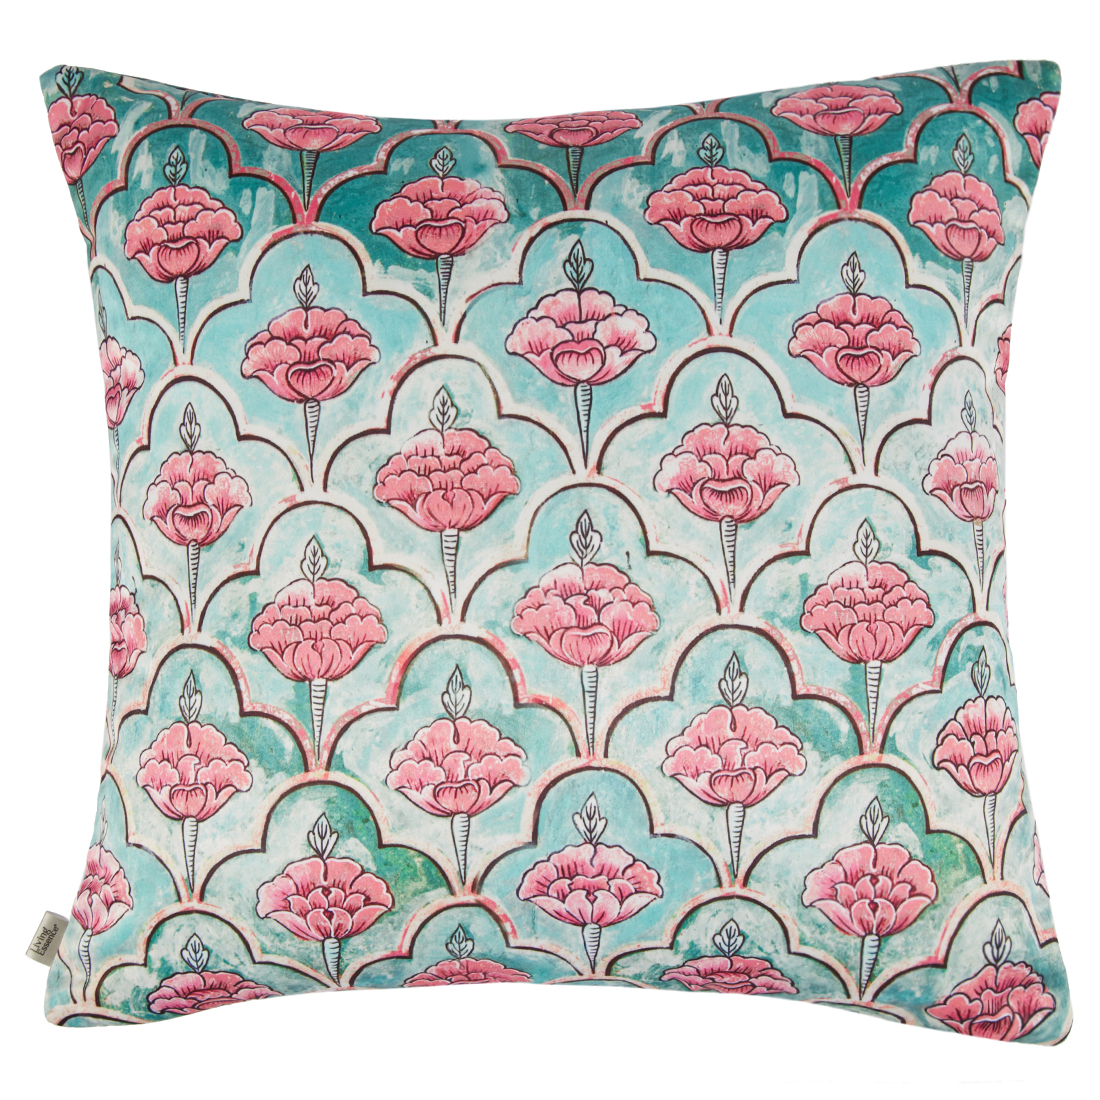 Digital Cushion Cover Peepal Cushion Covers in Poly Satin Colour by Living Essence